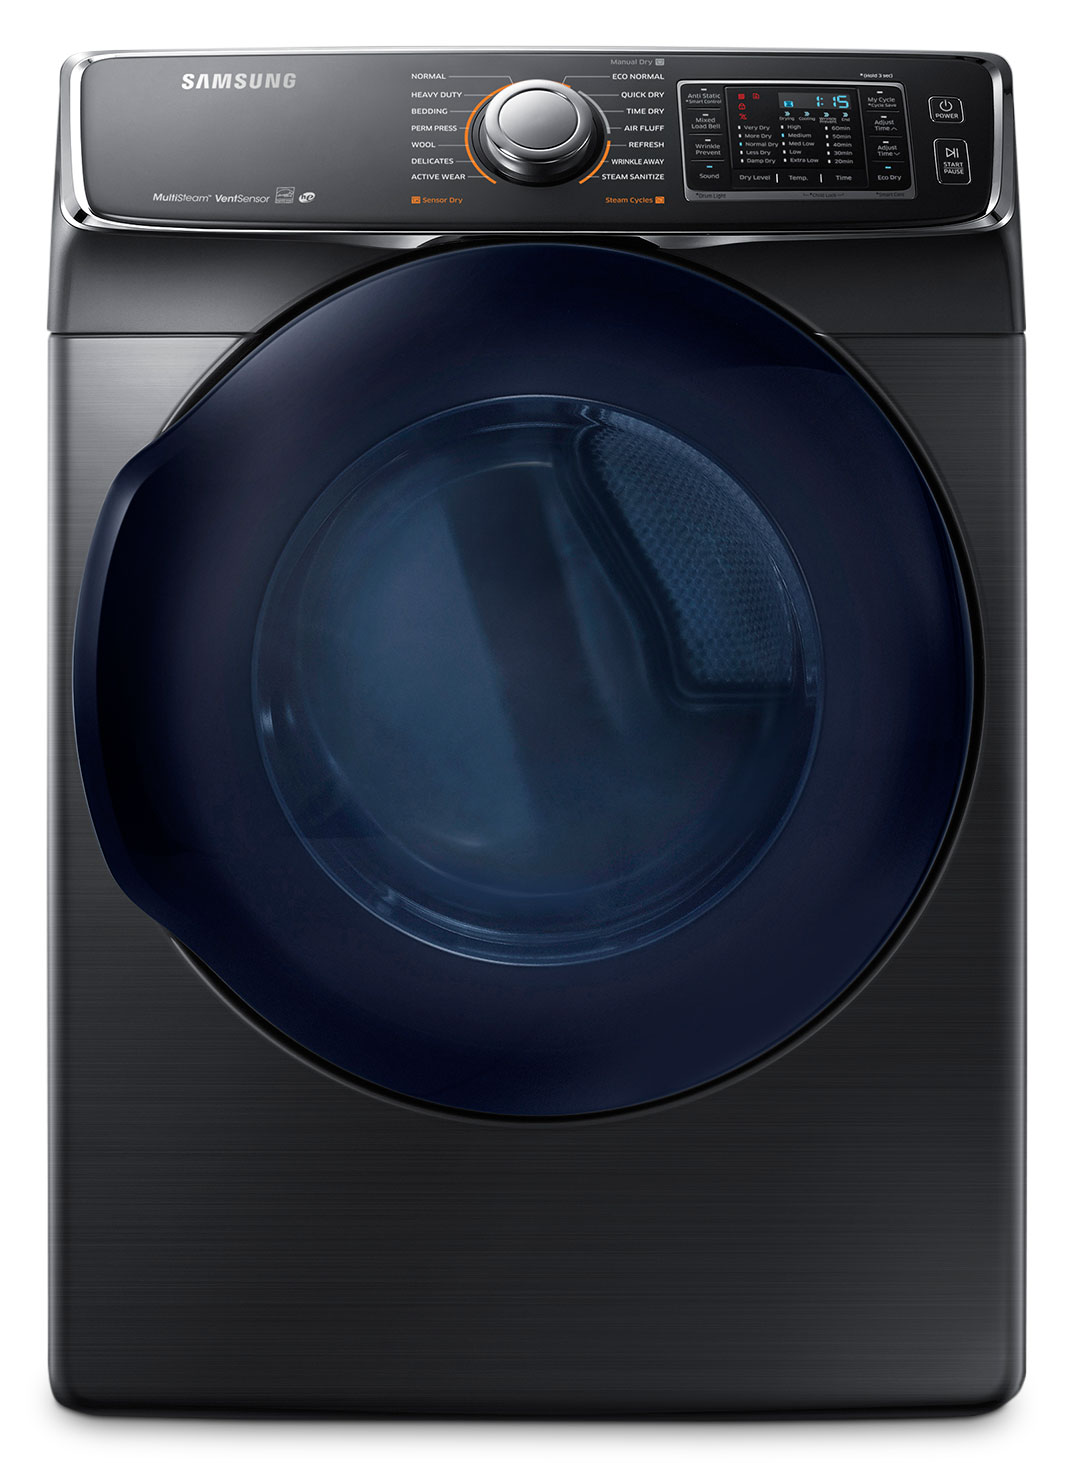 Washers and Dryers - Samsung 7.5 Cu. Ft. Electric Dryer – Black Stainless Steel DV45K6500EV/AC